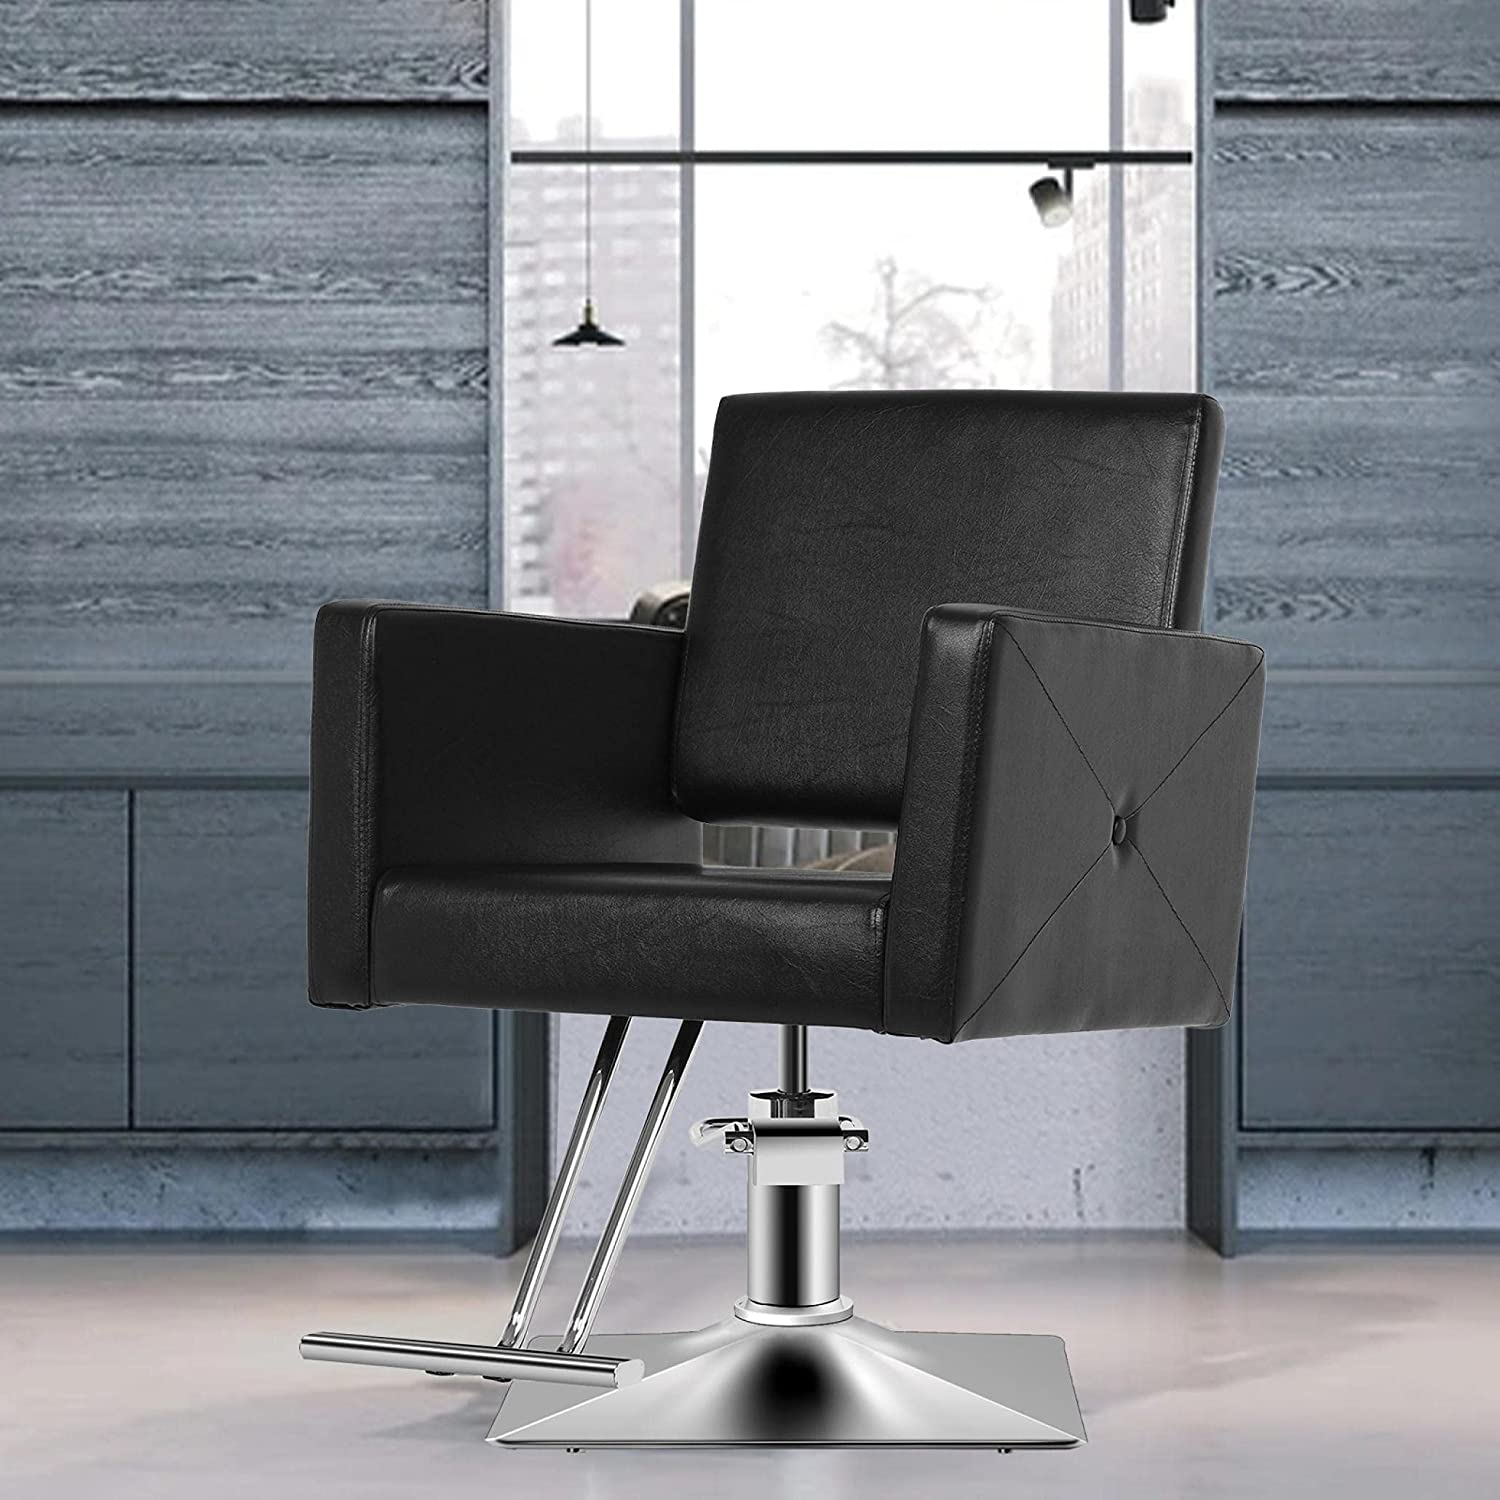 CHENTUO Barber Chairs All Don't miss the campaign Purpose Heavy with 2021 autumn and winter new Hair Salon